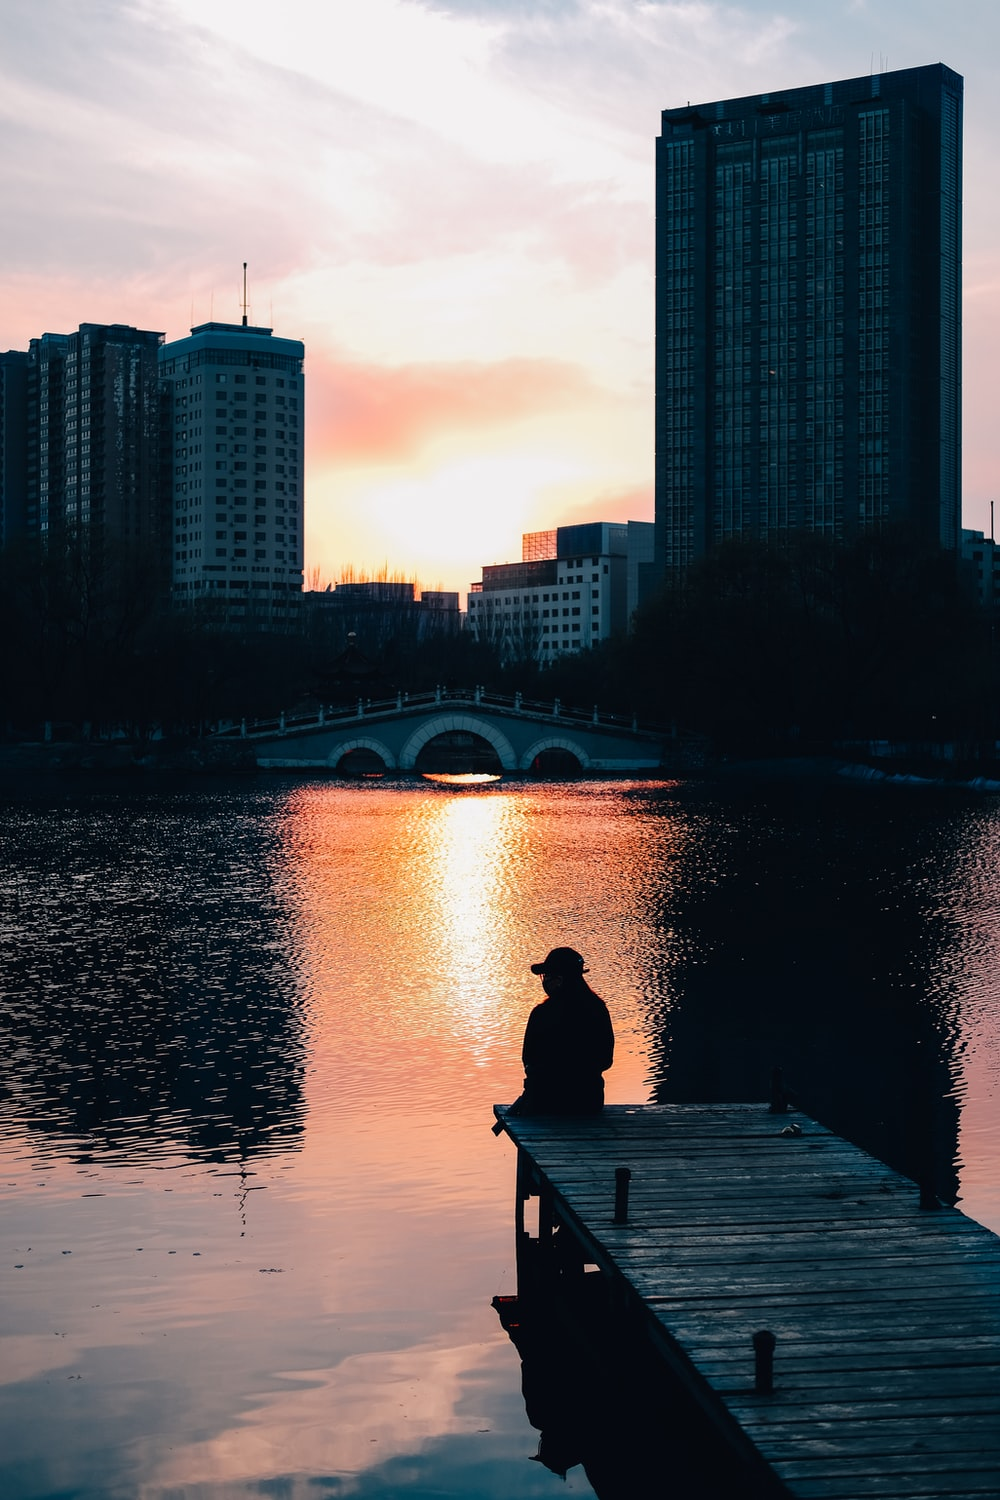 man sitting on wooden dock near body of water during sunset